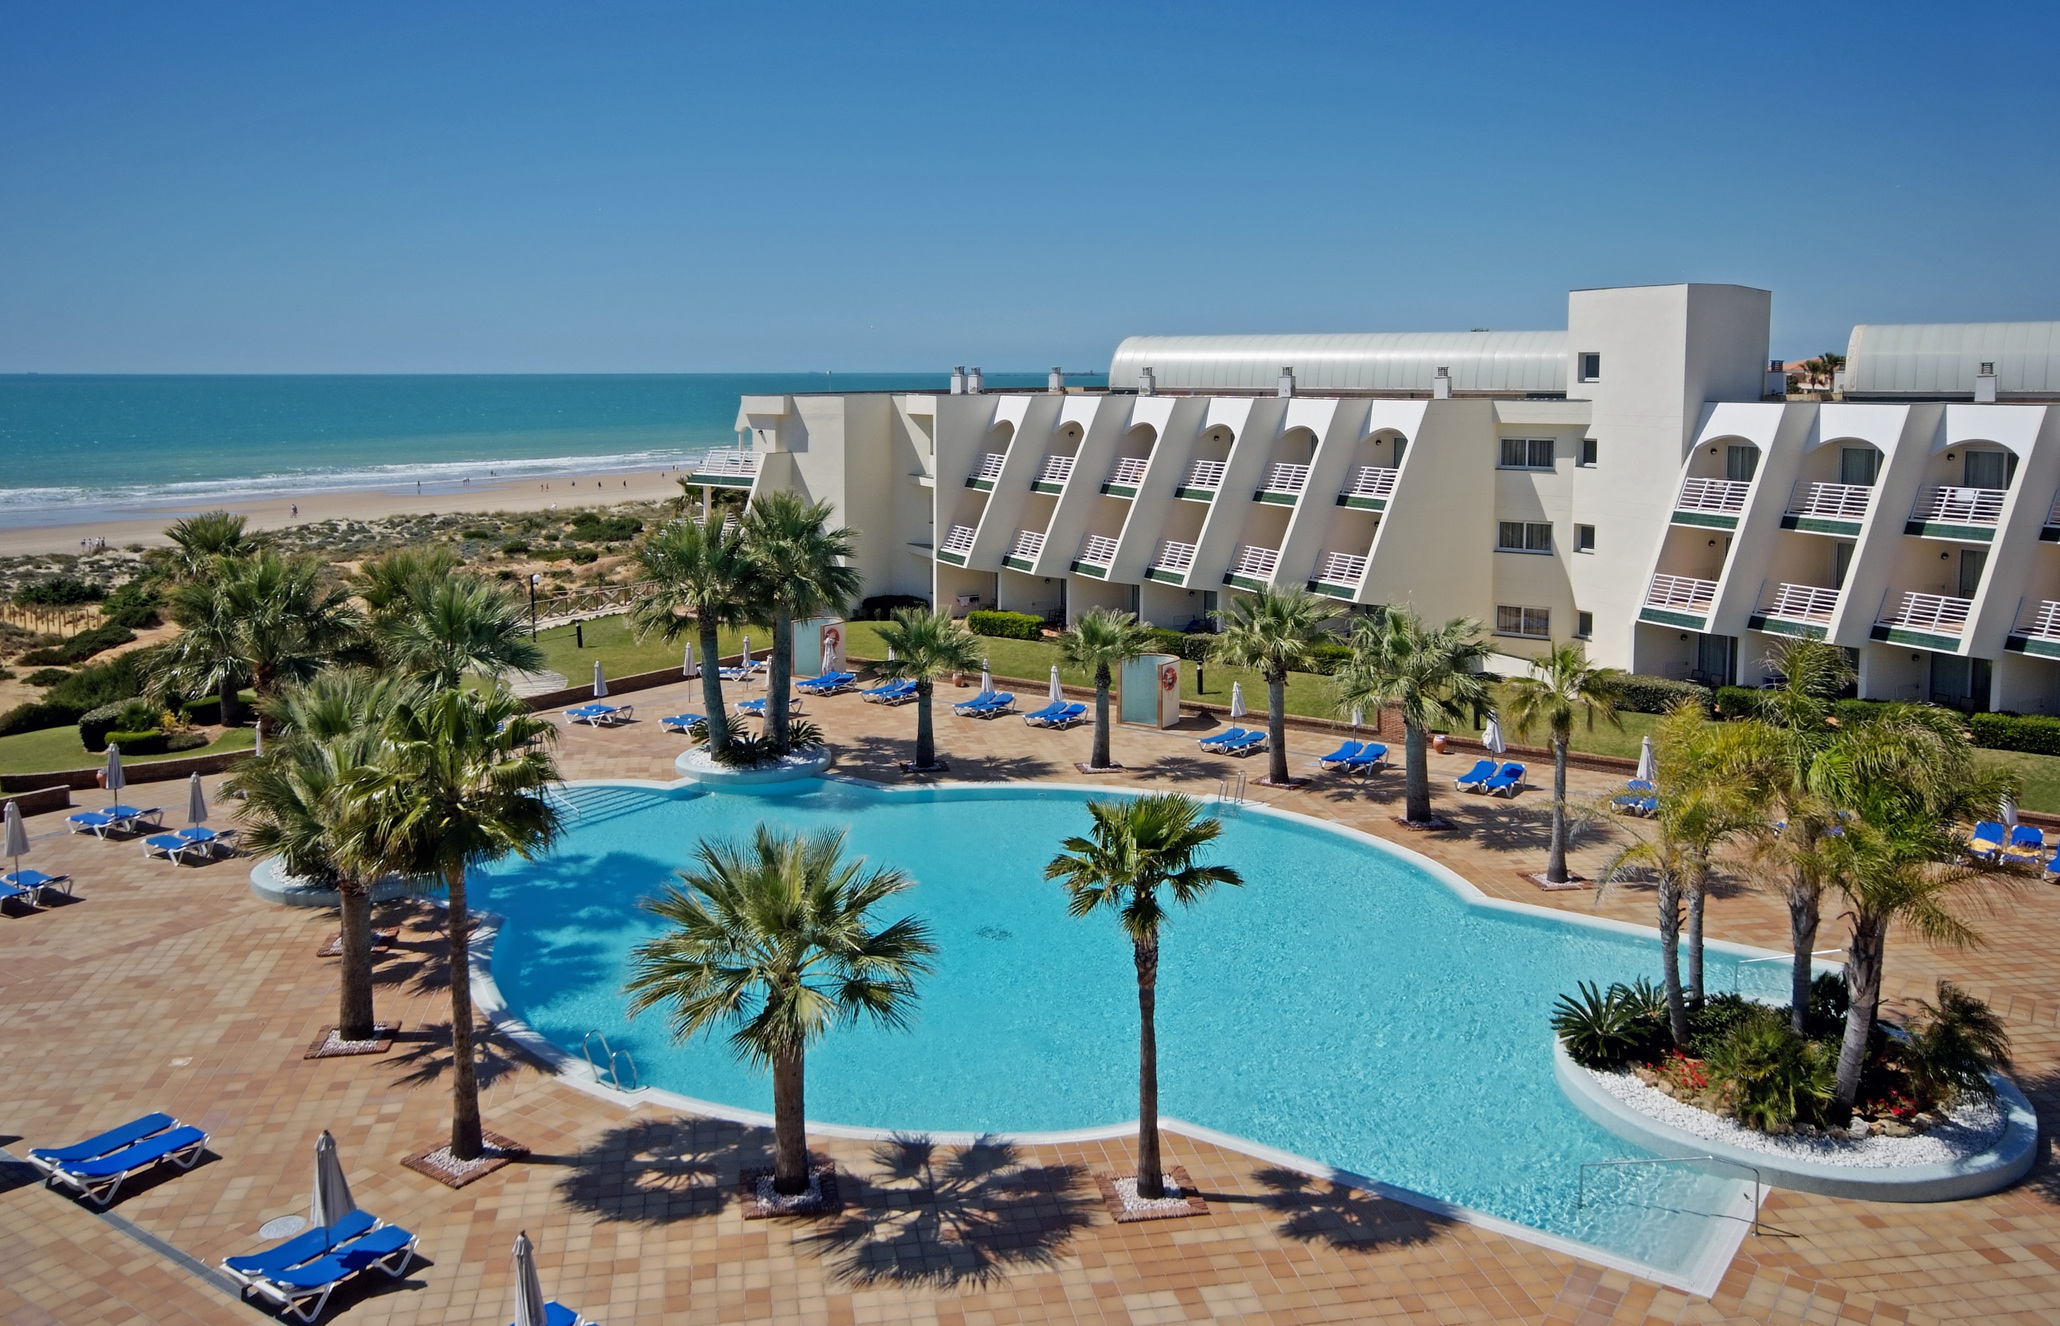 Disabled Holidays - Confortel Islantilla Hotel , Huelva, Costa De La Luz, Spain